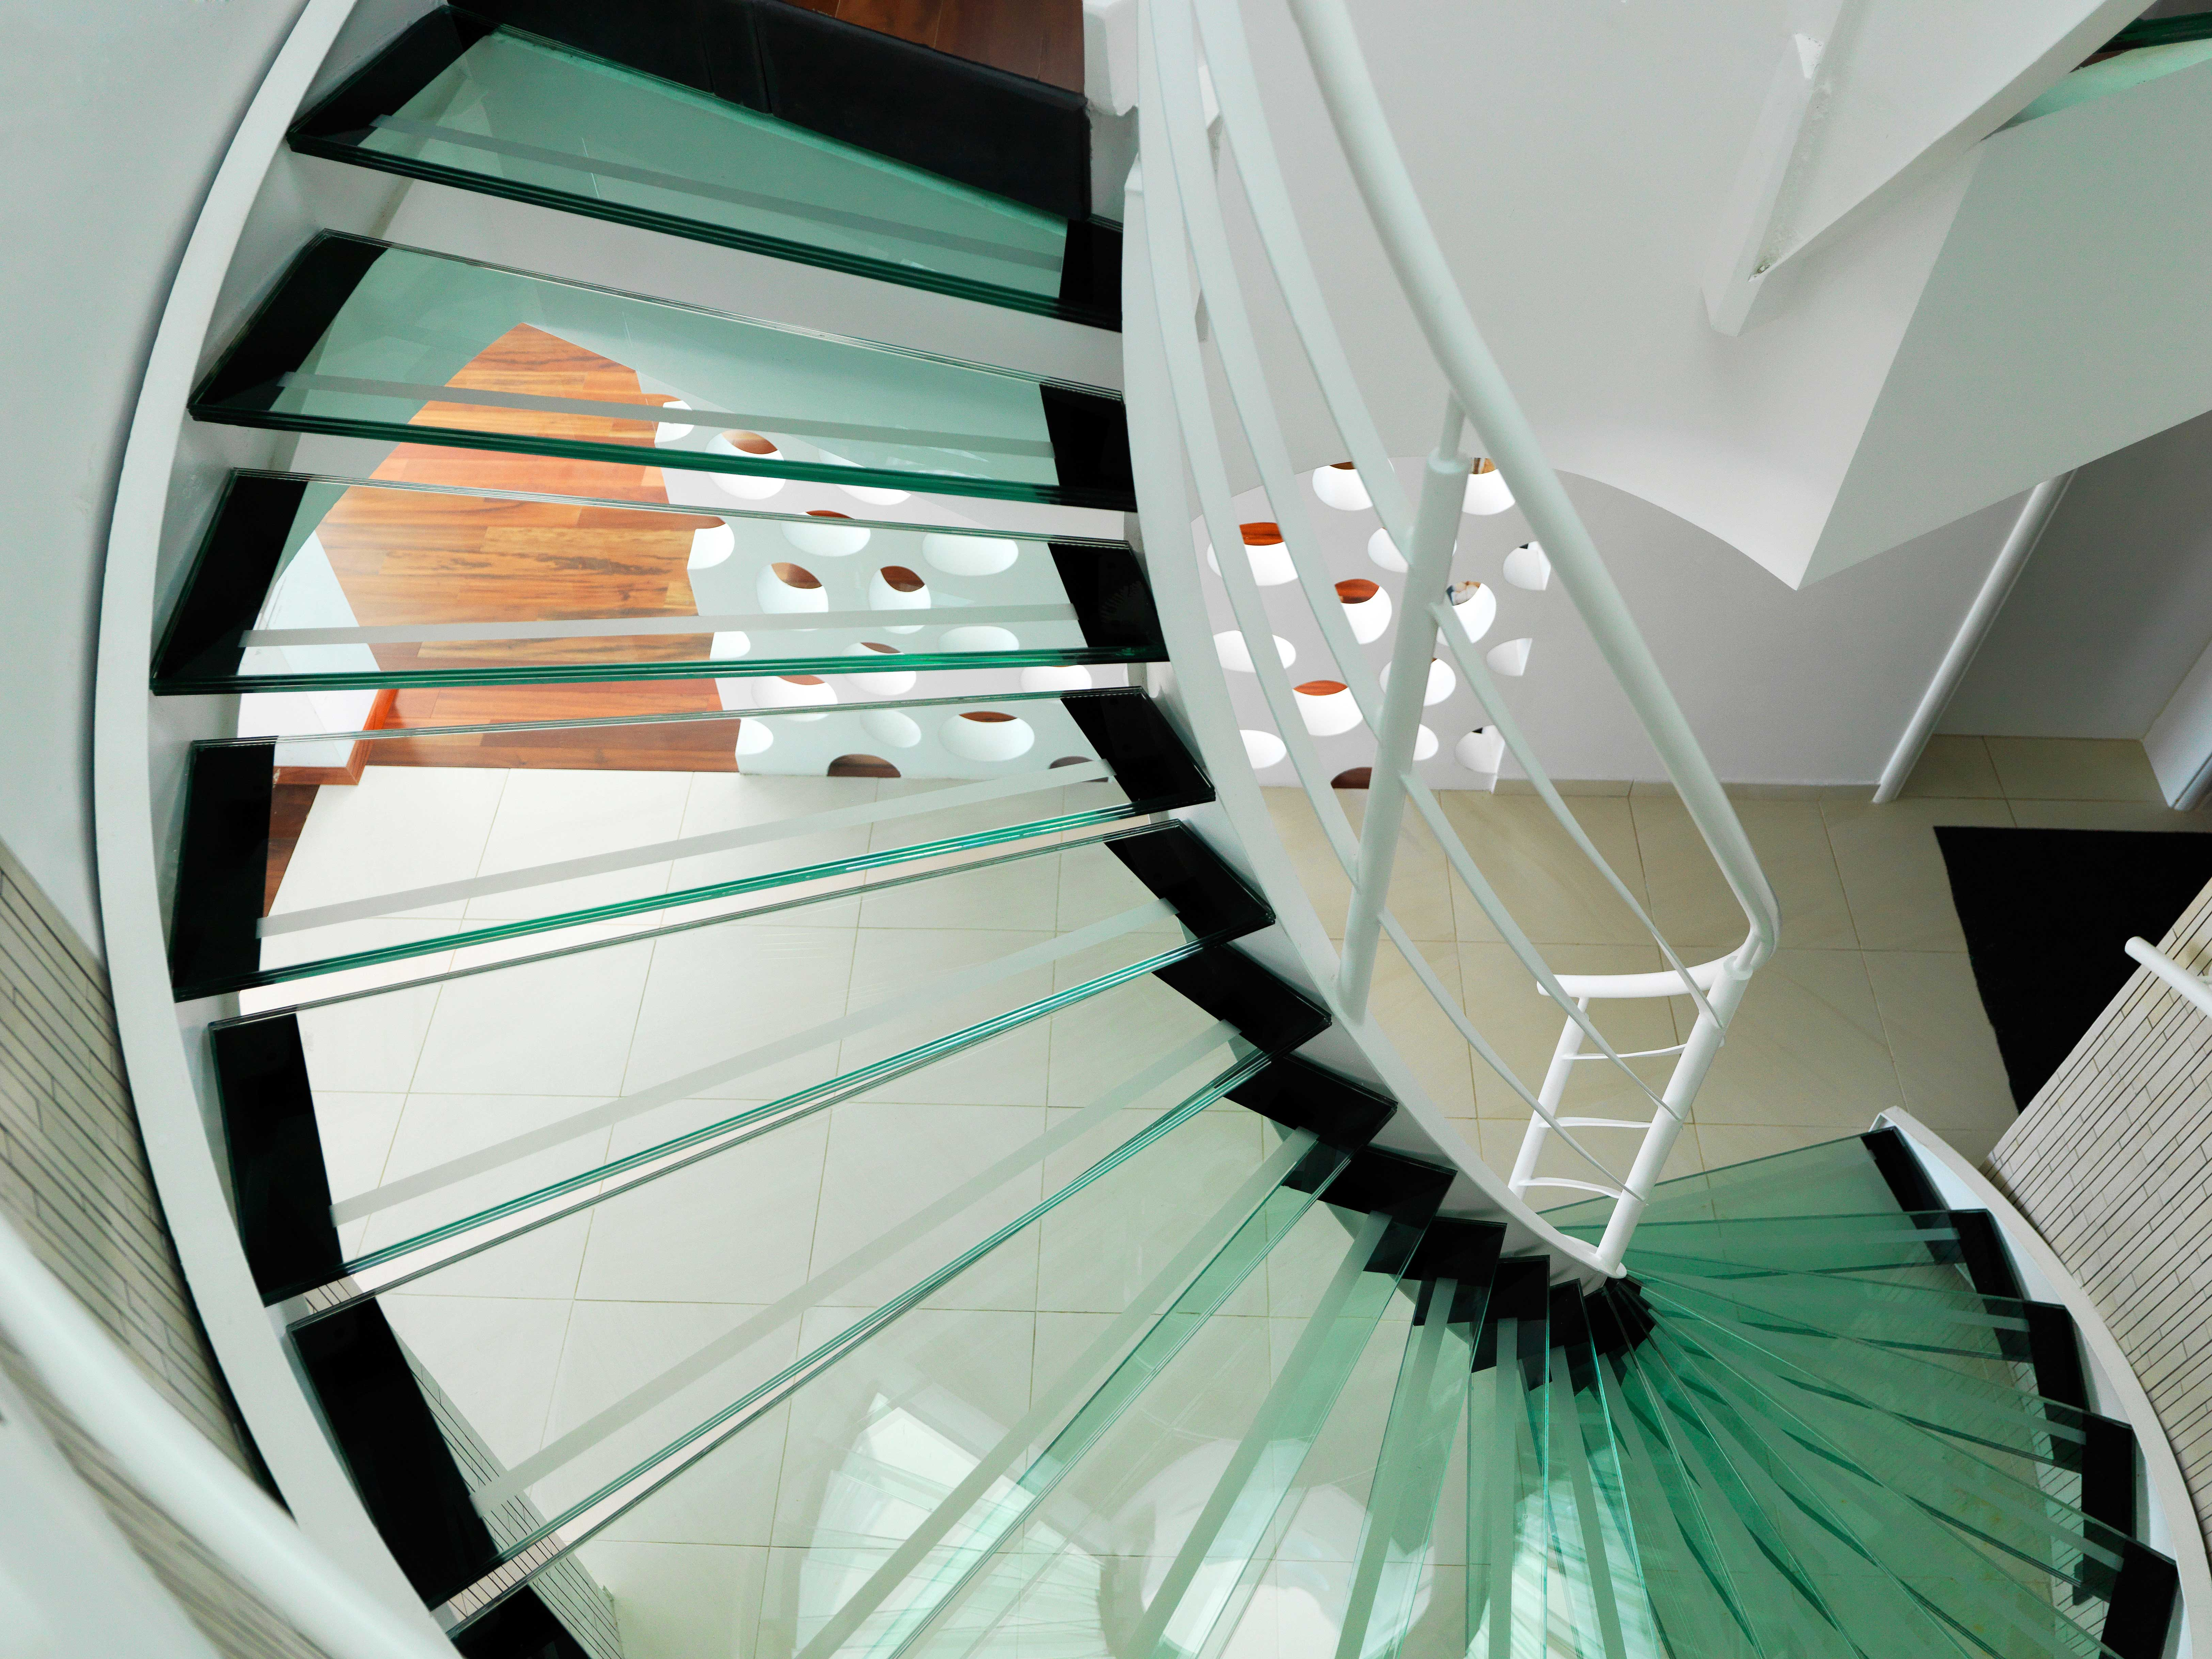 GIH_GlassStairs_1